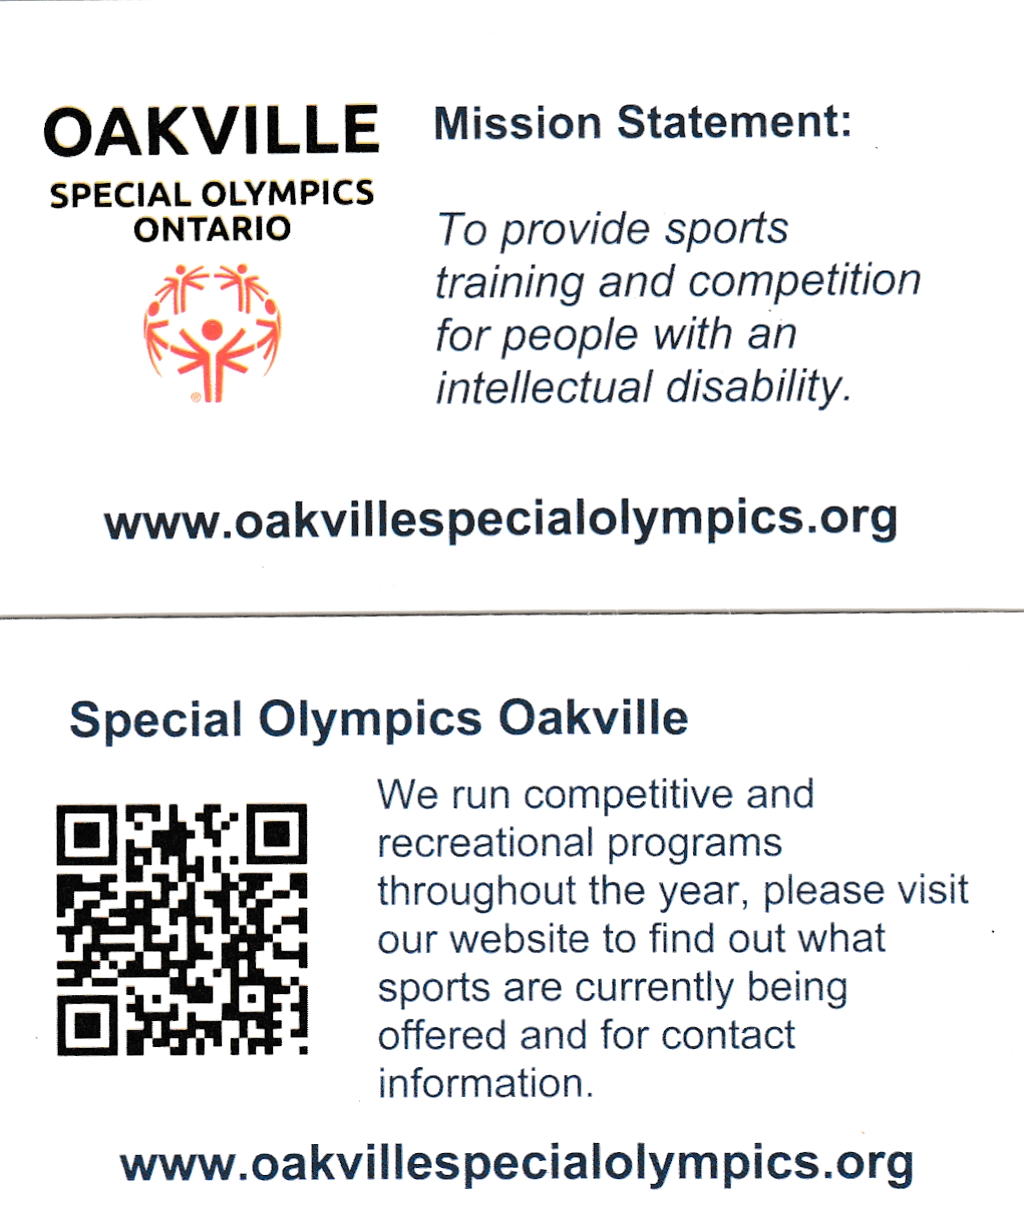 SOO Oakville, available resources